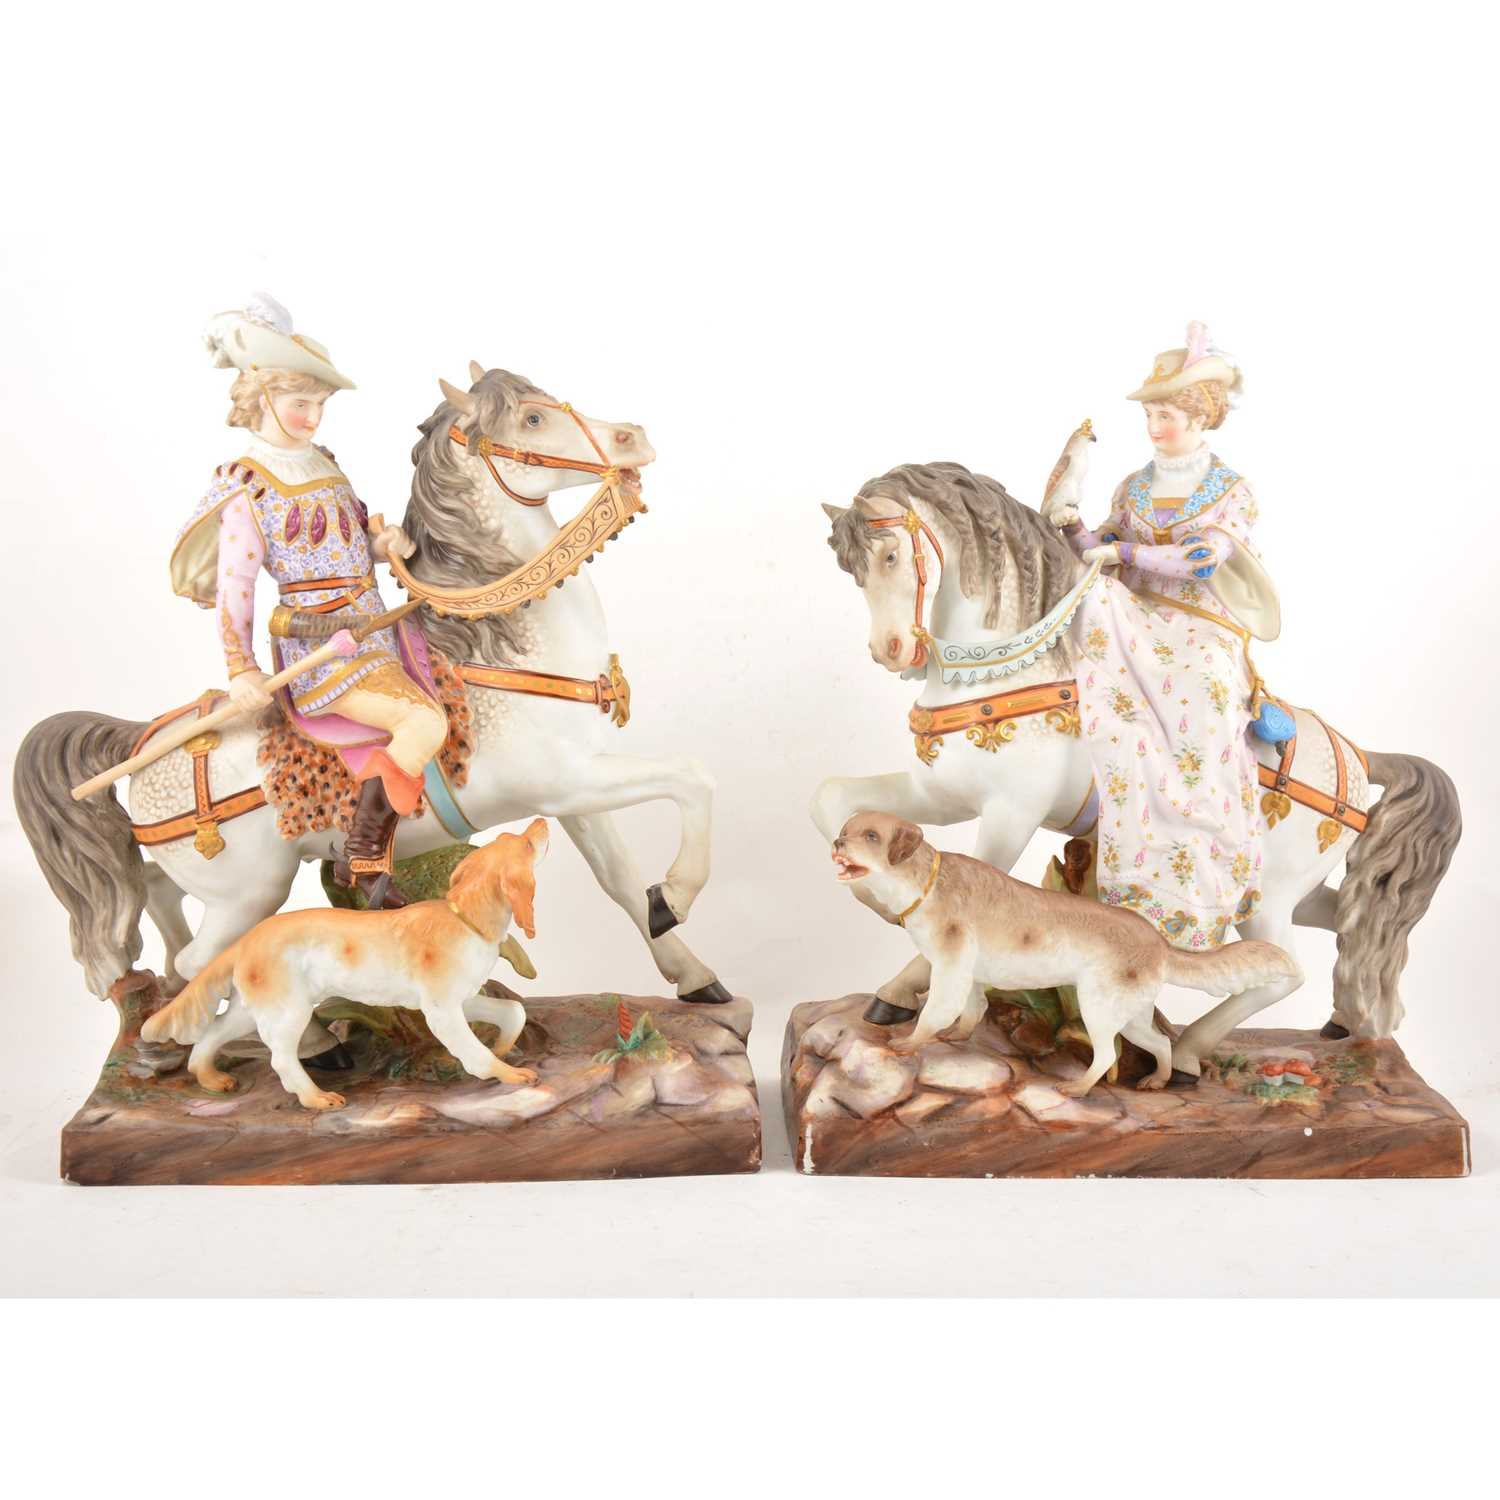 Lot 28 - An impressive large pair of Continental hand-painted porcelain hunting groups